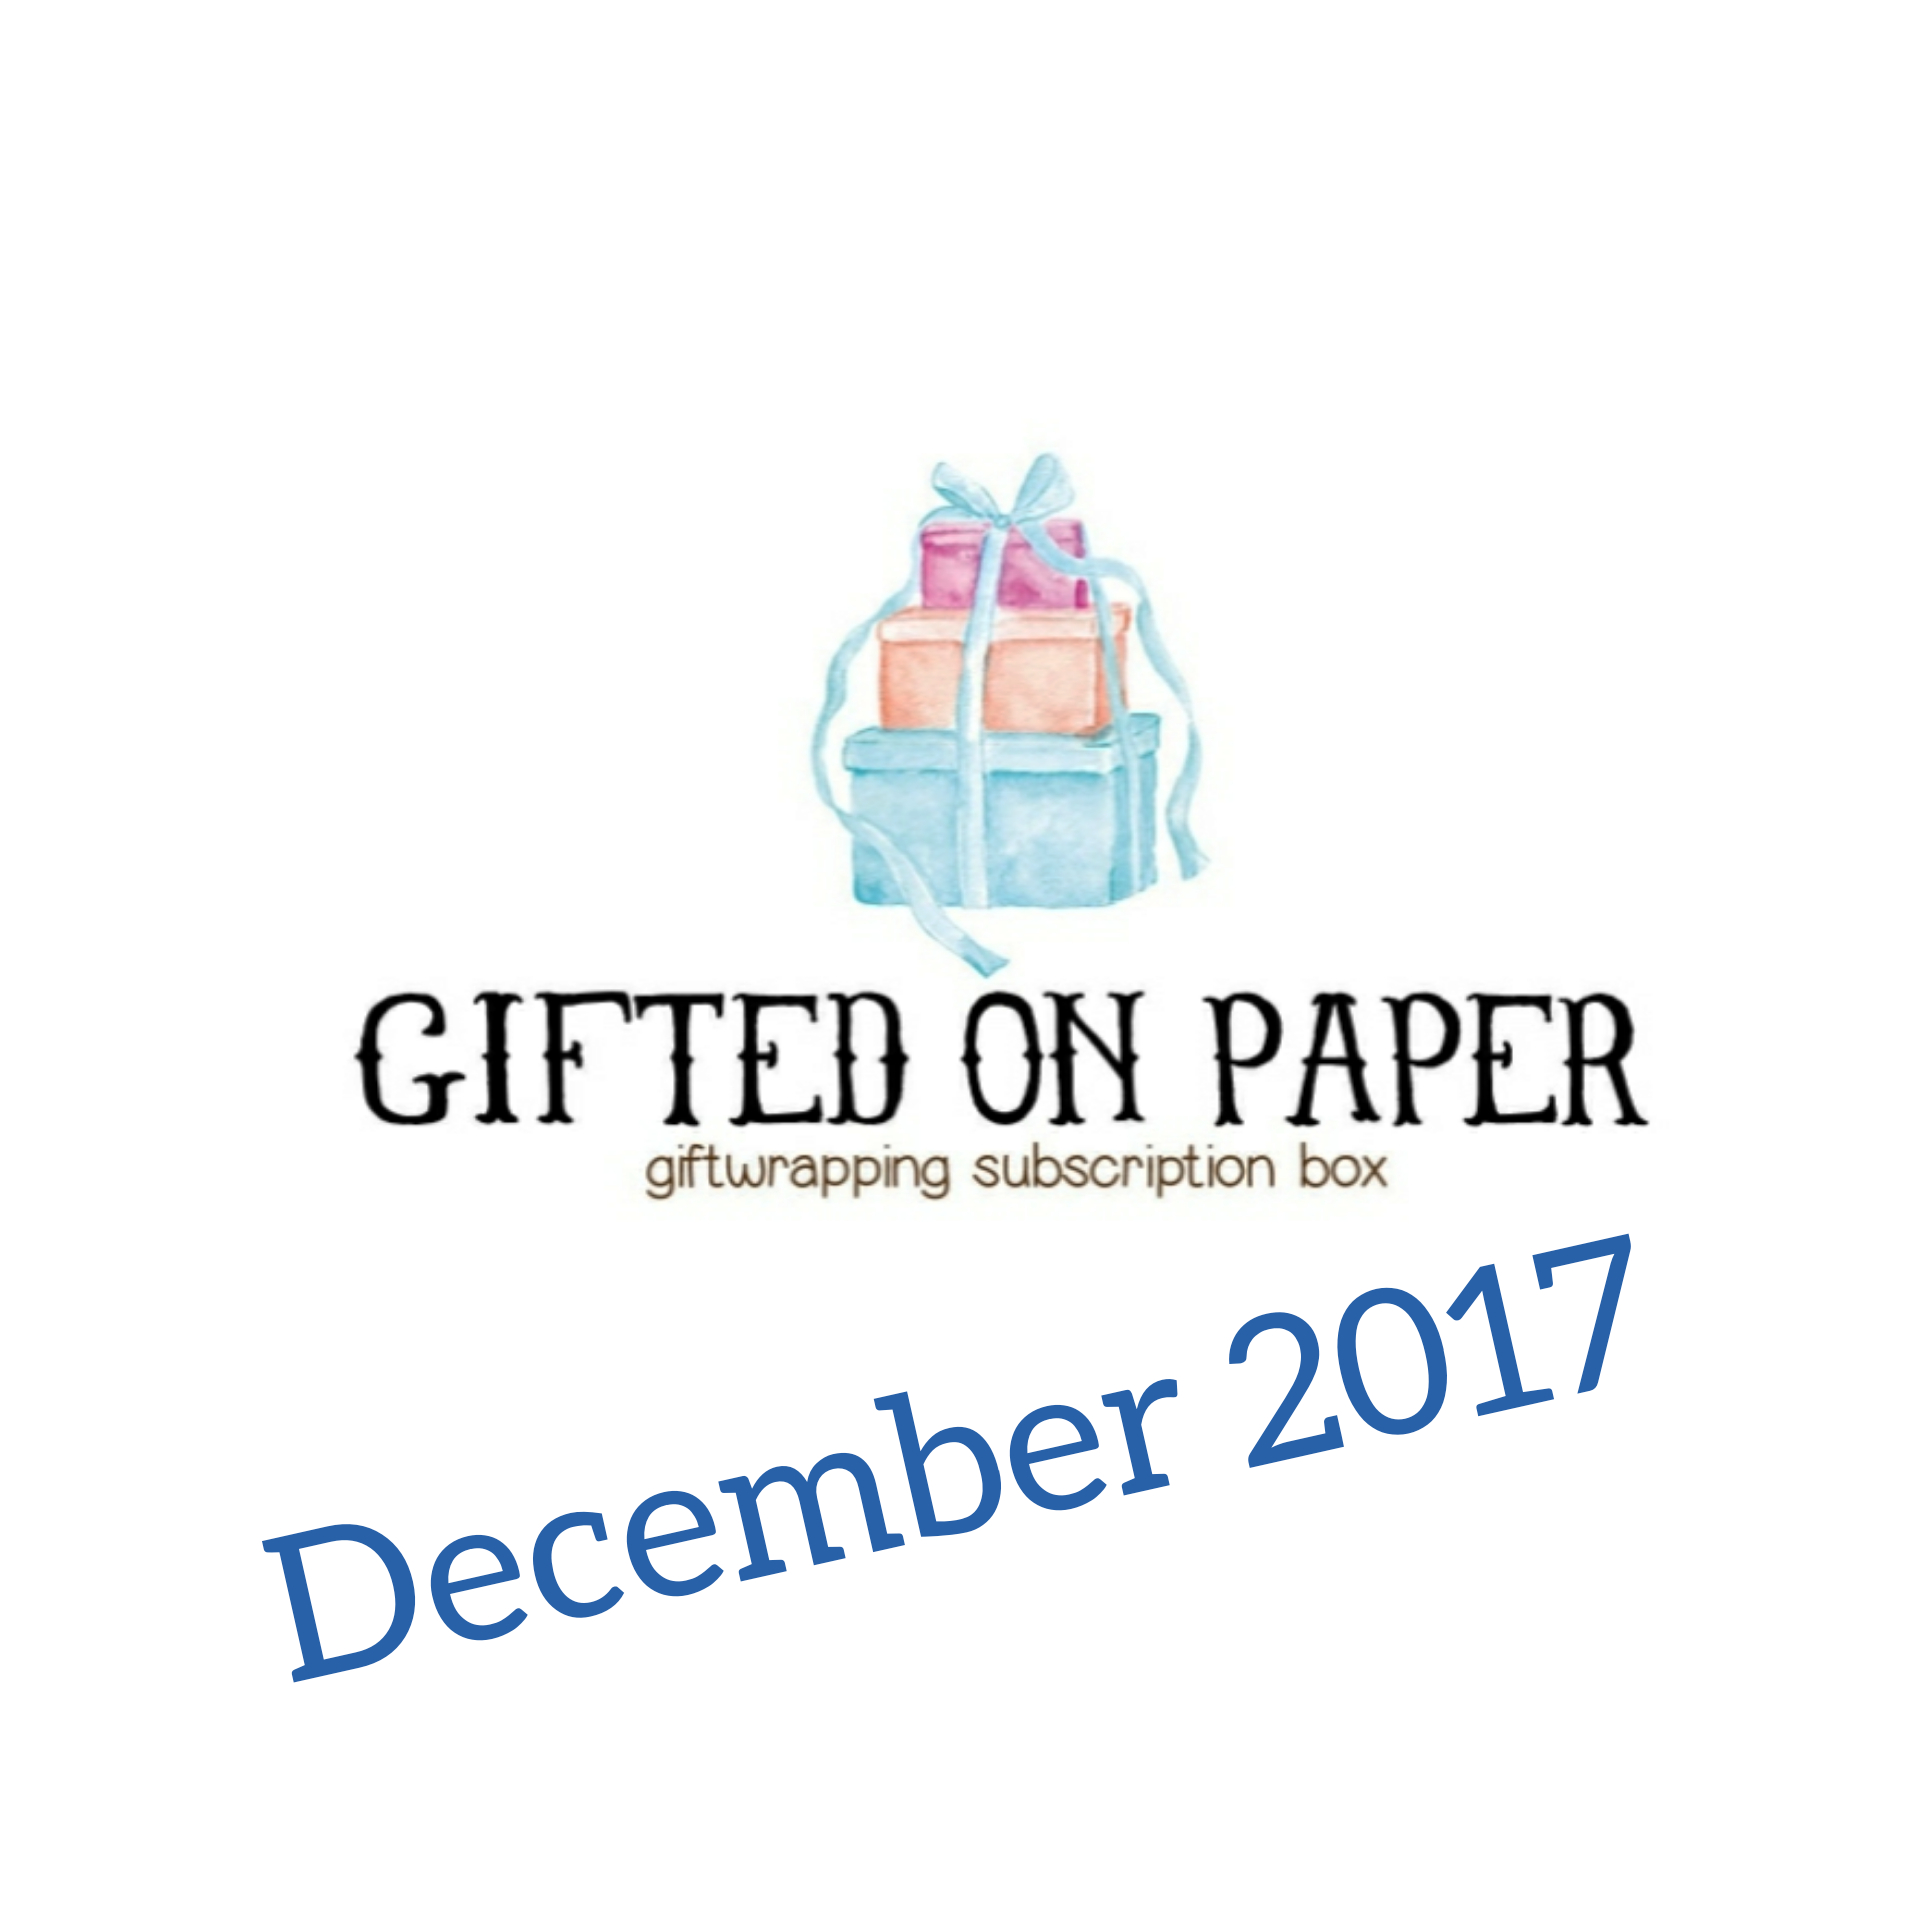 Gifted on Paper December 2017